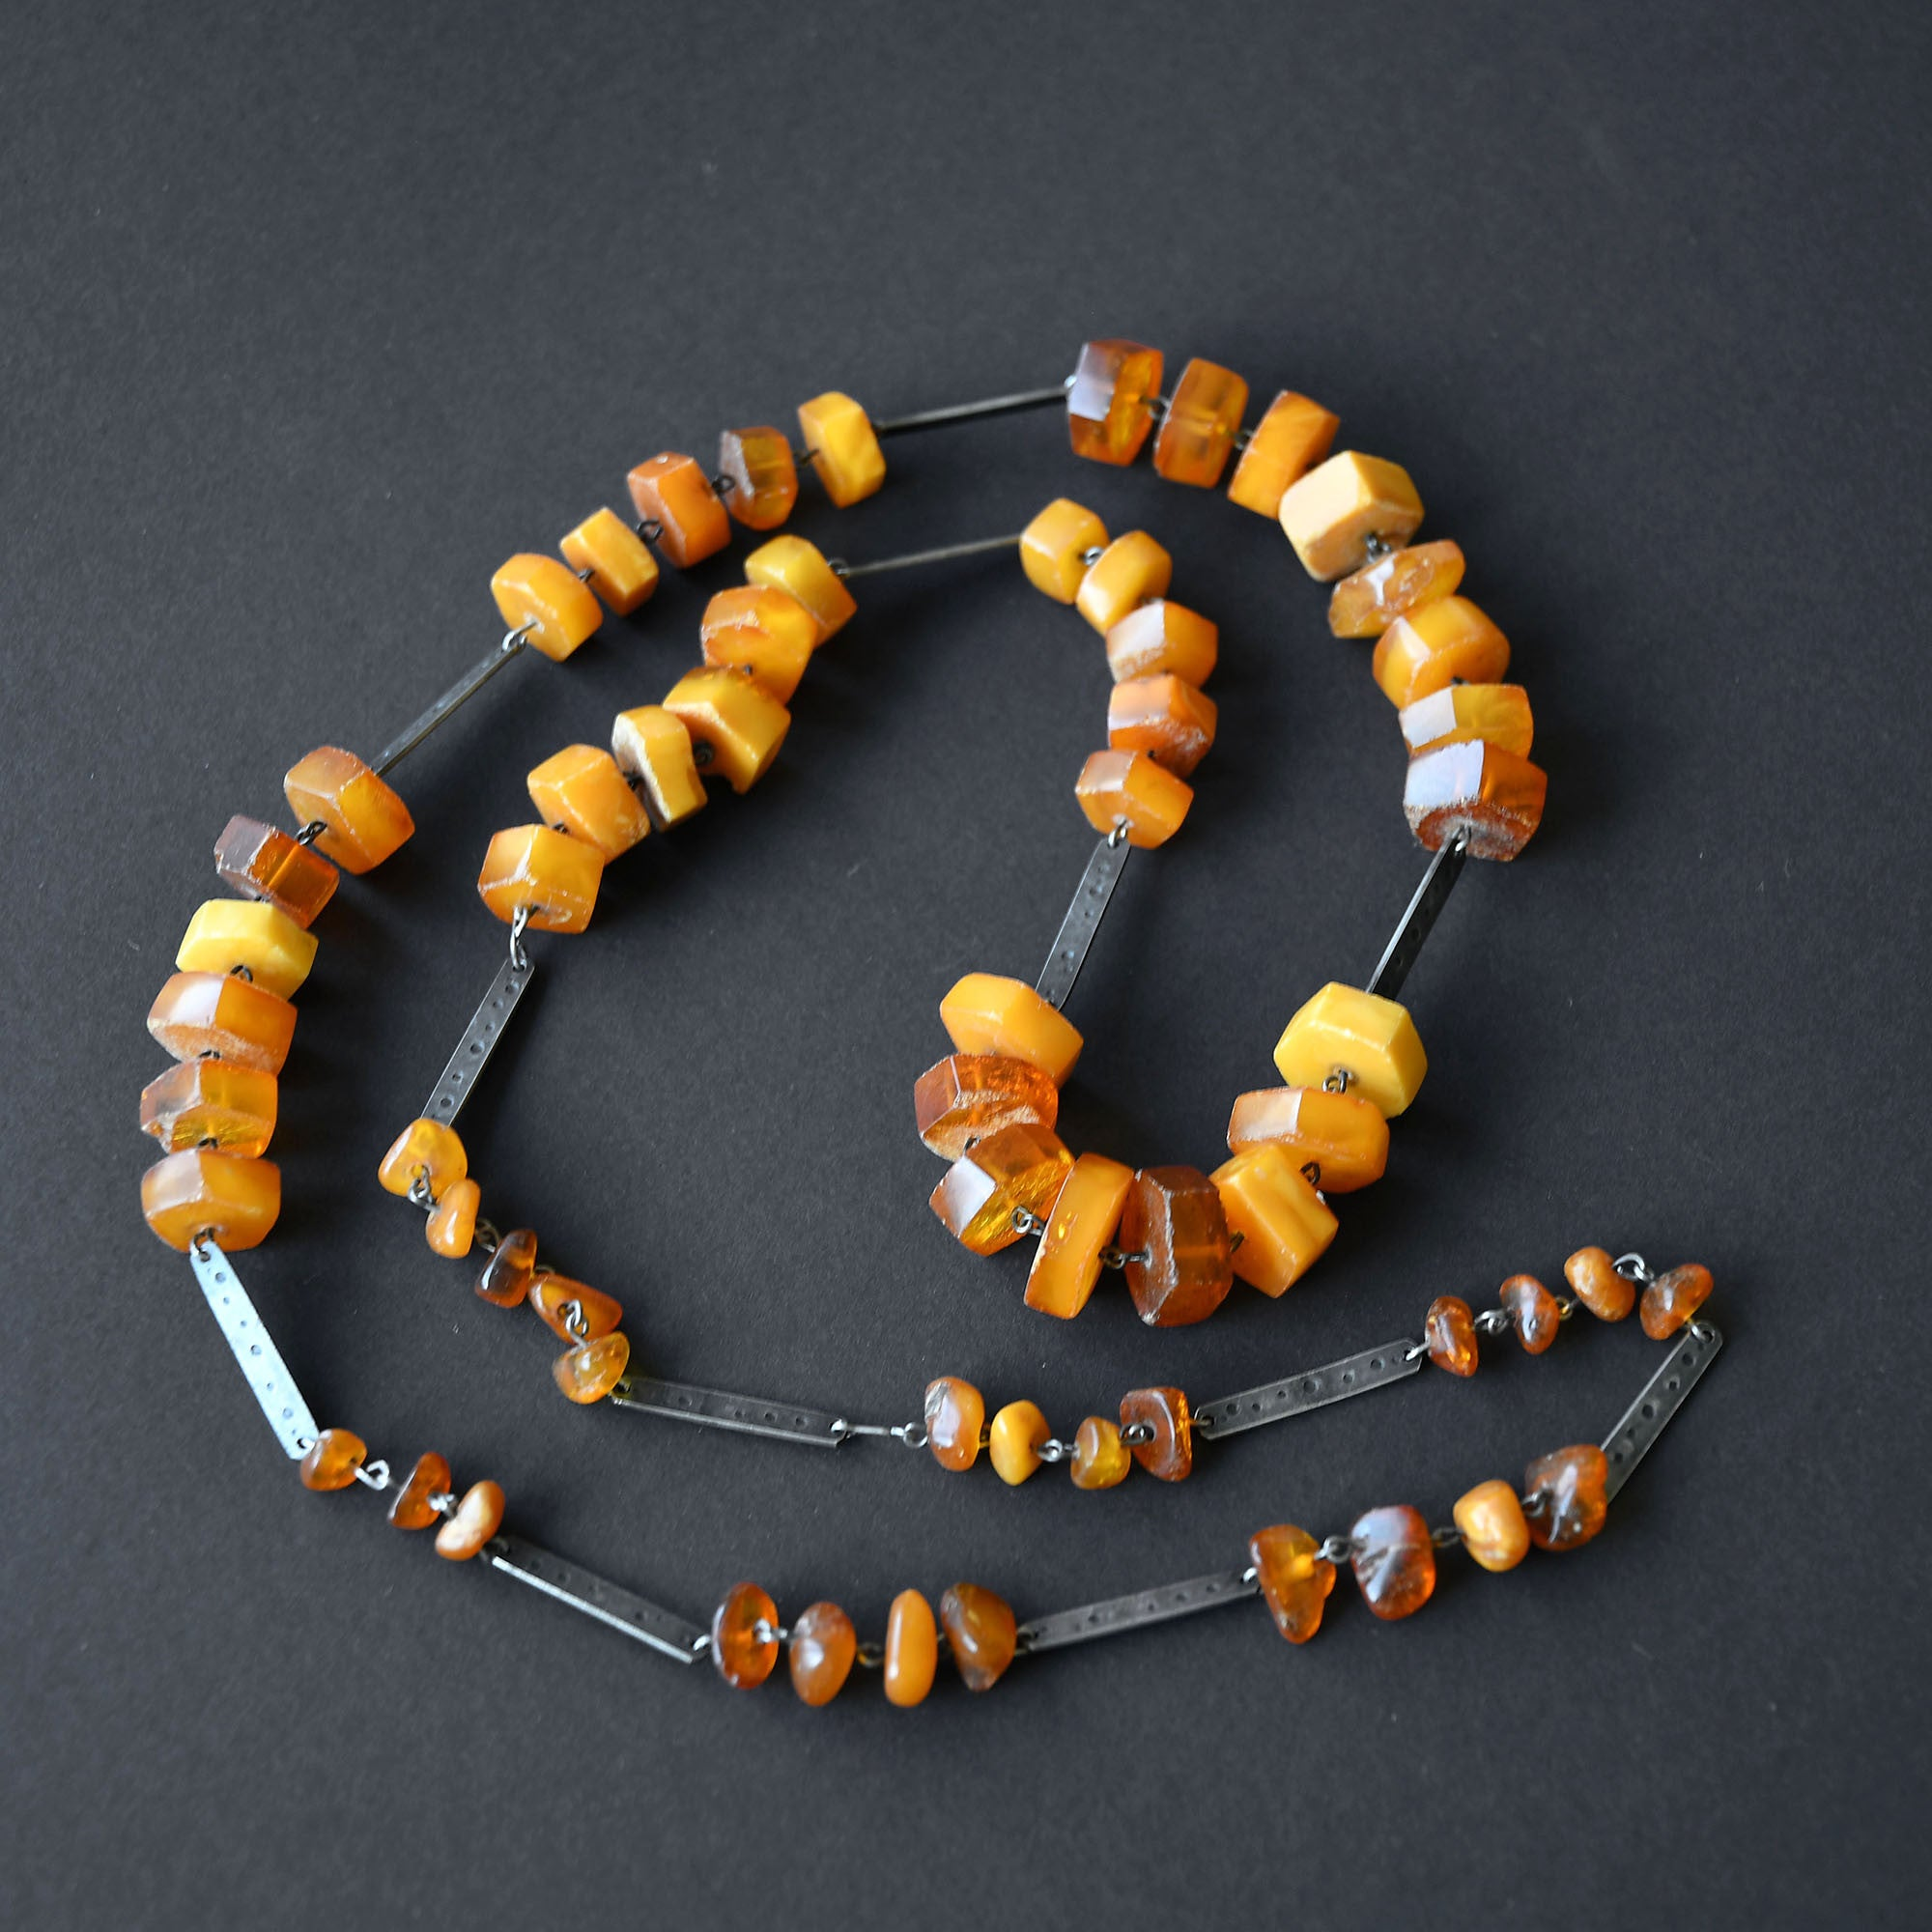 Vintage bead necklace of orange and transparent amber